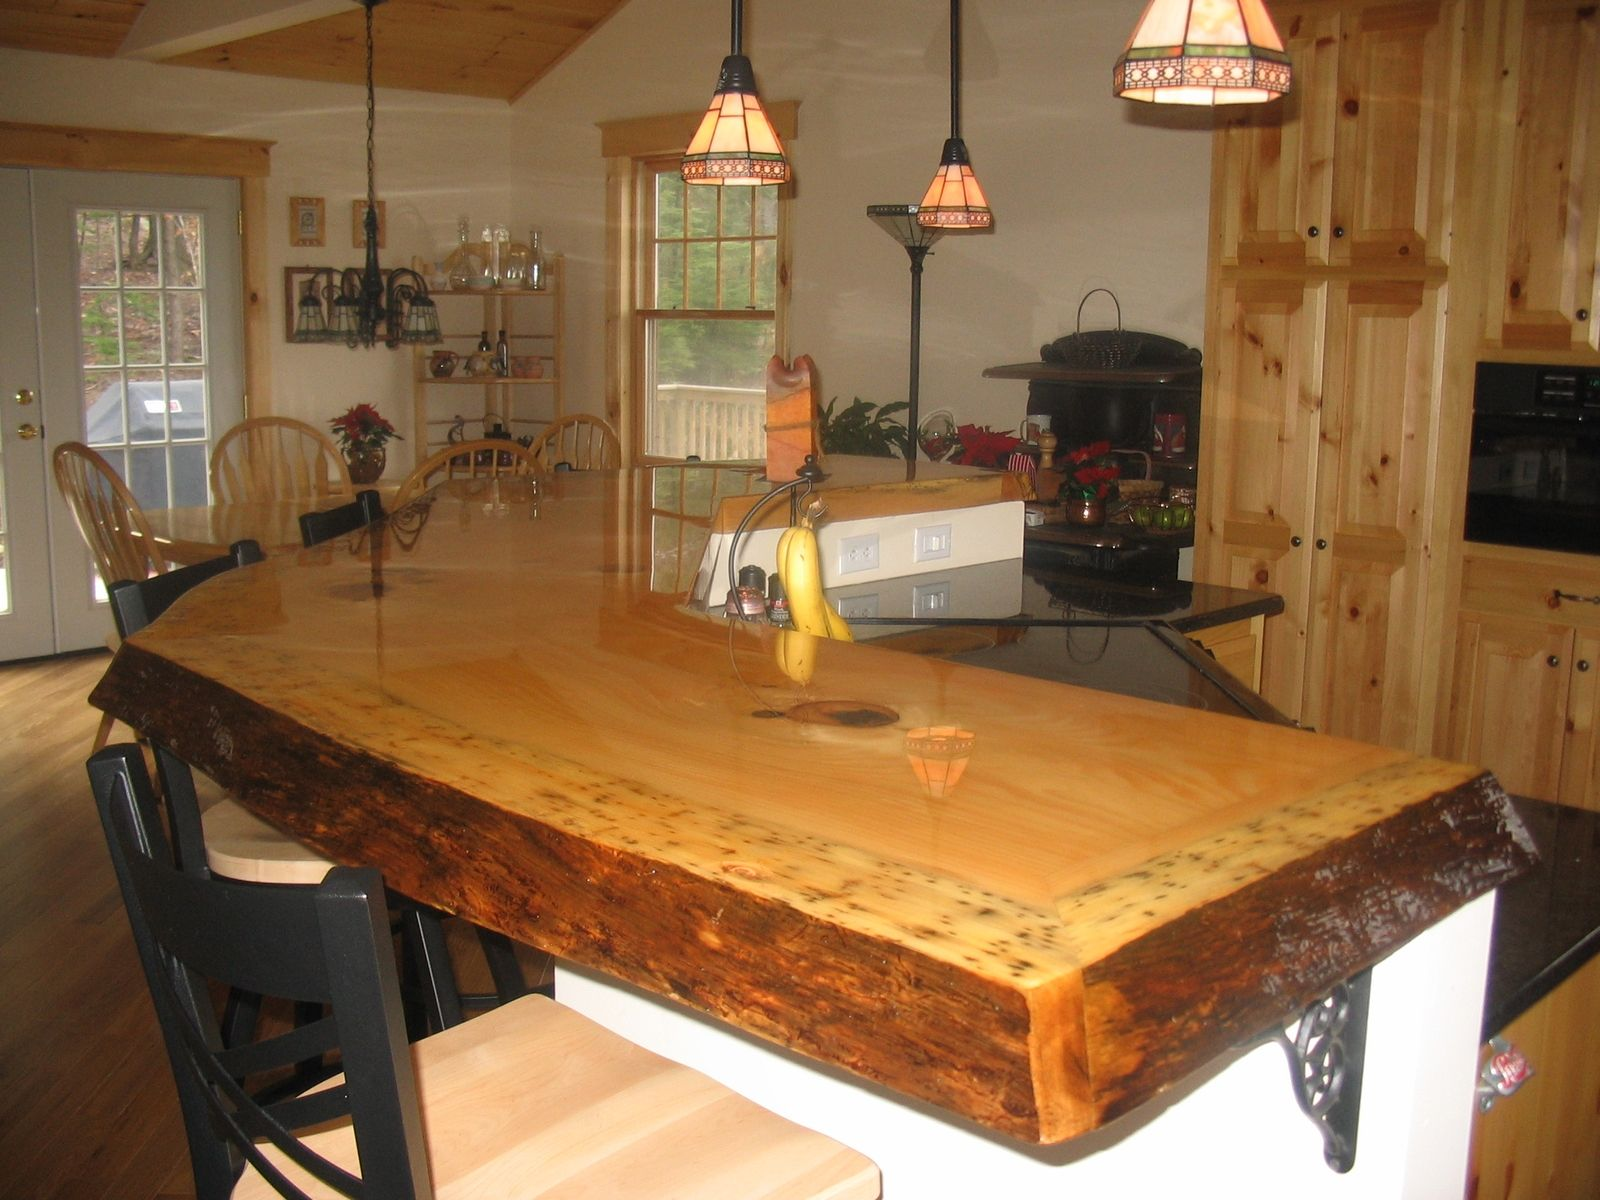 Awesome rustic wood slab bar top | Interior design wanted | Pinterest